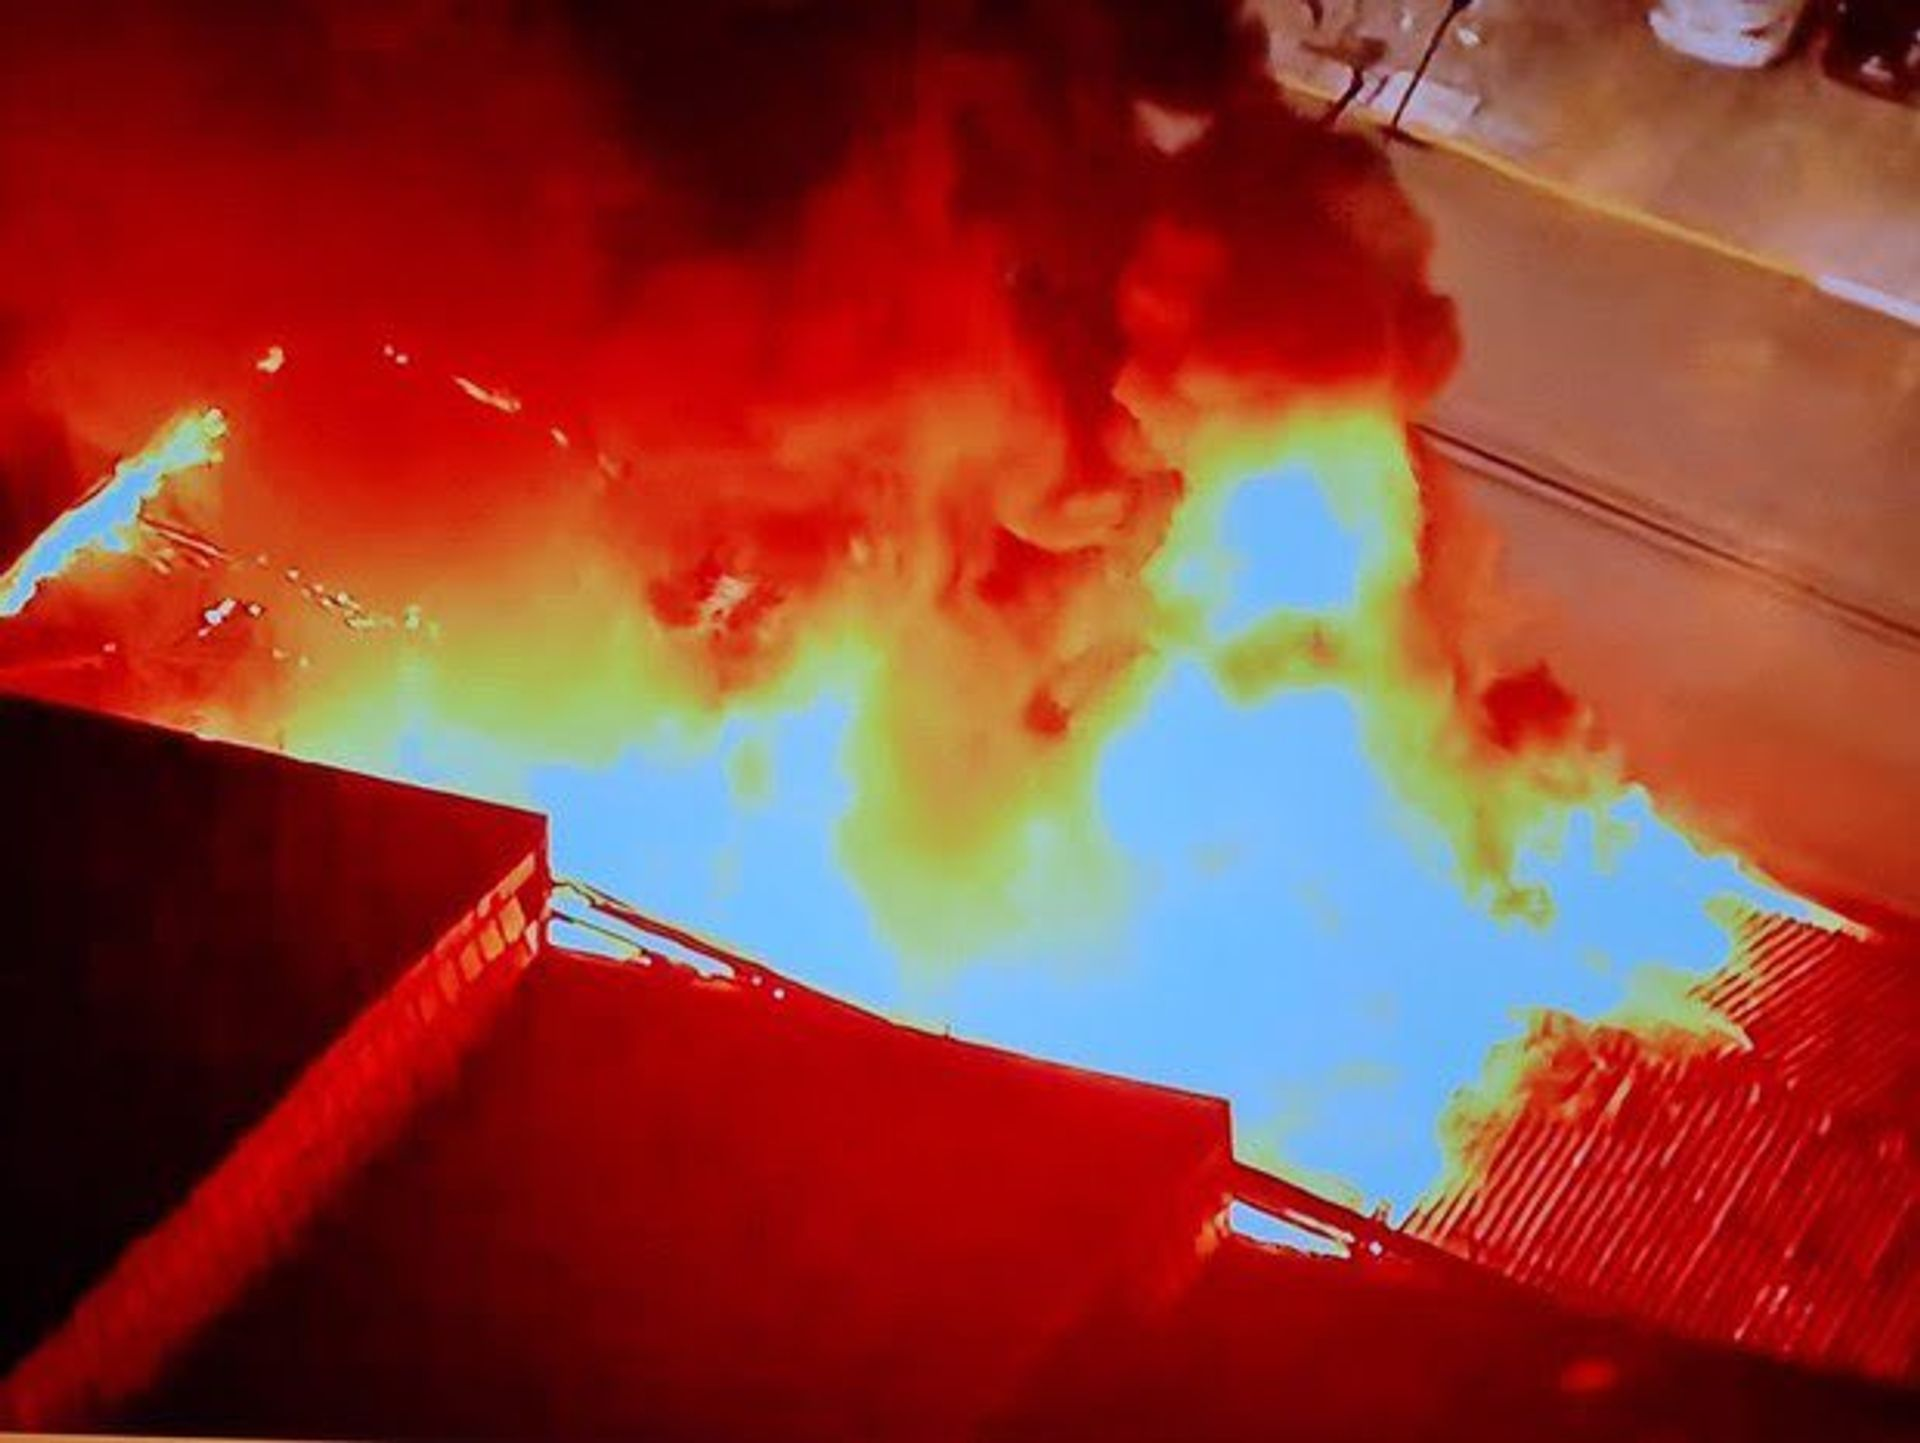 A warehouse of the Cinemateca Brasileira caught fire on the evening of 29 July Arte1